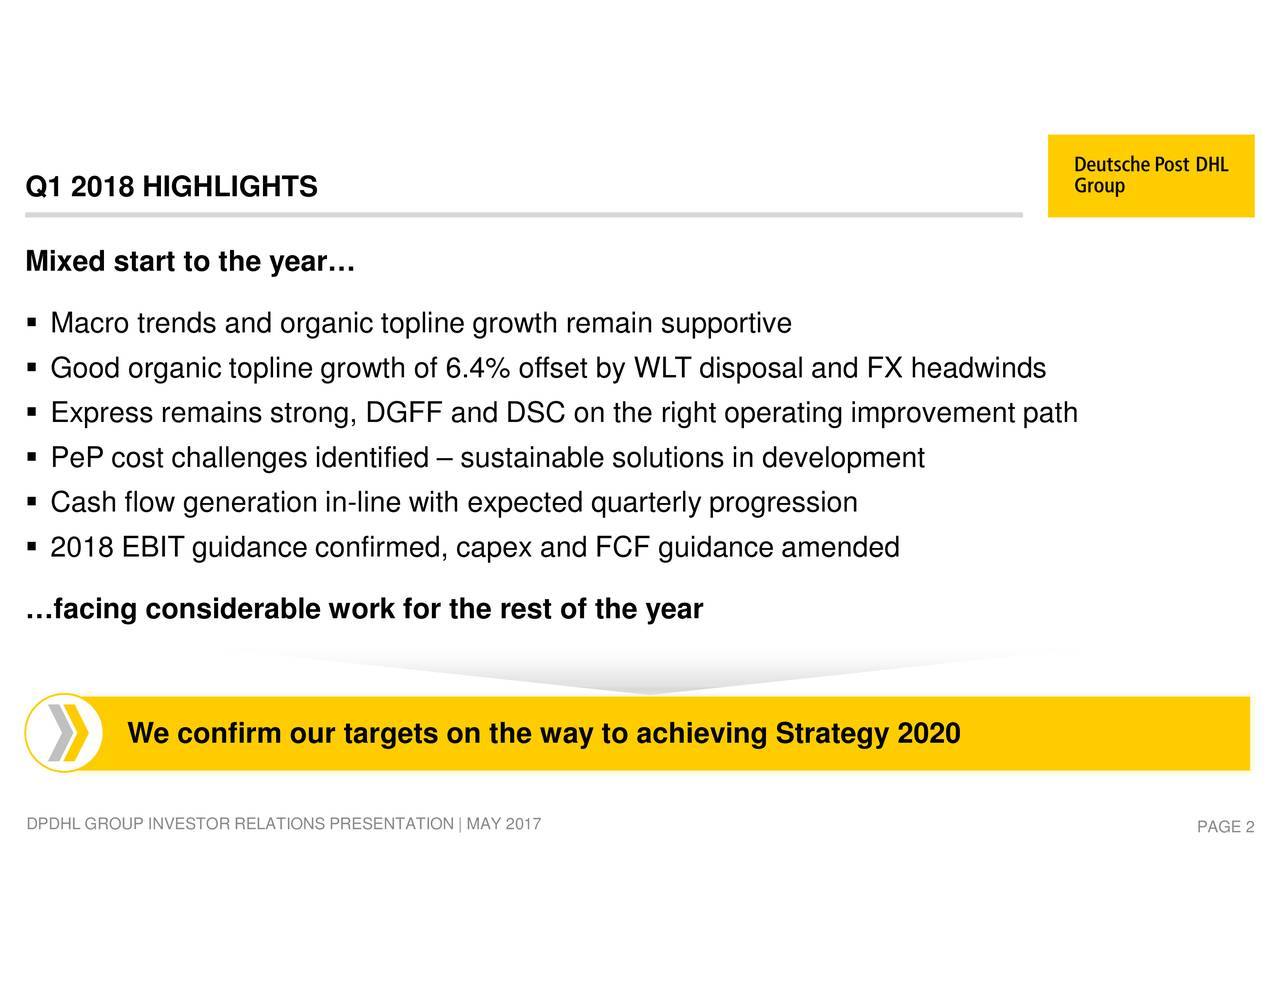 tegy 2020 amended ortive perating improvement path isposans in developments y progression 017 We confirm our targets on the way to achieving Stra Macro trends and organic topline growth remain suppLT dt otCrl guidance Q1 20M1ixedGstaIt oTthe year… …facing considerable work for the rest of the yearENTATION | MAY 2